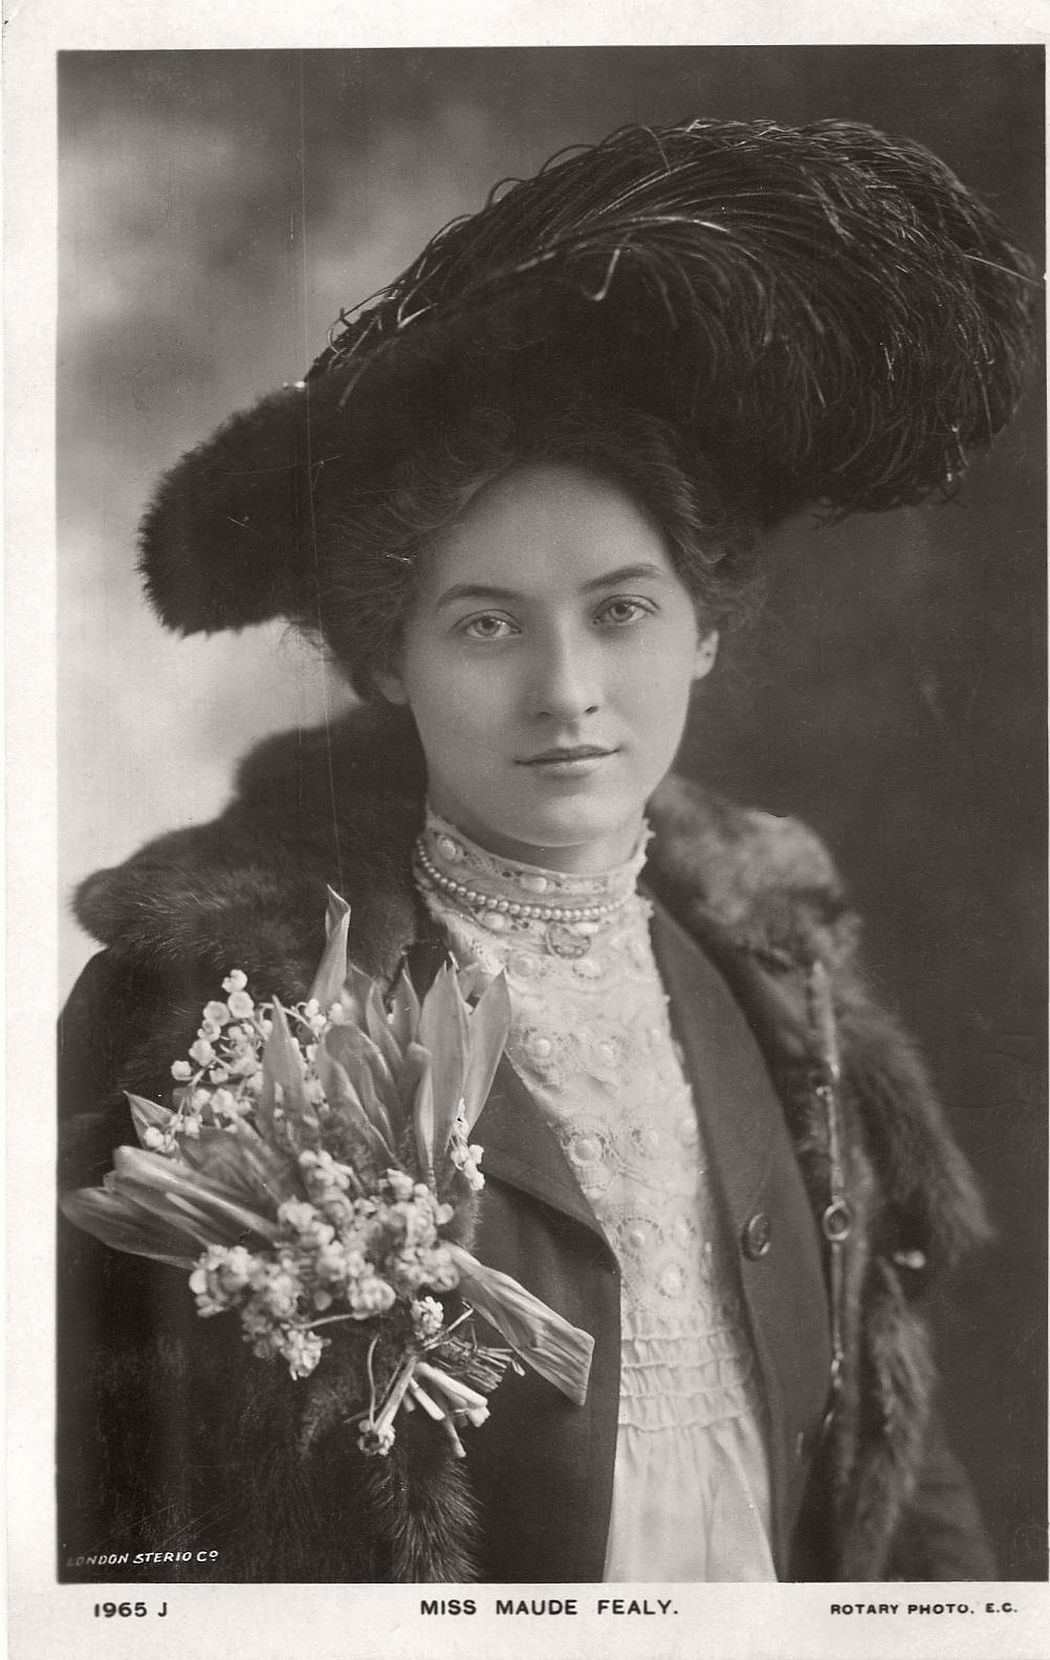 vintage-postcard-of-actress-miss-maude-fealy-1900s-early-xx-century-12